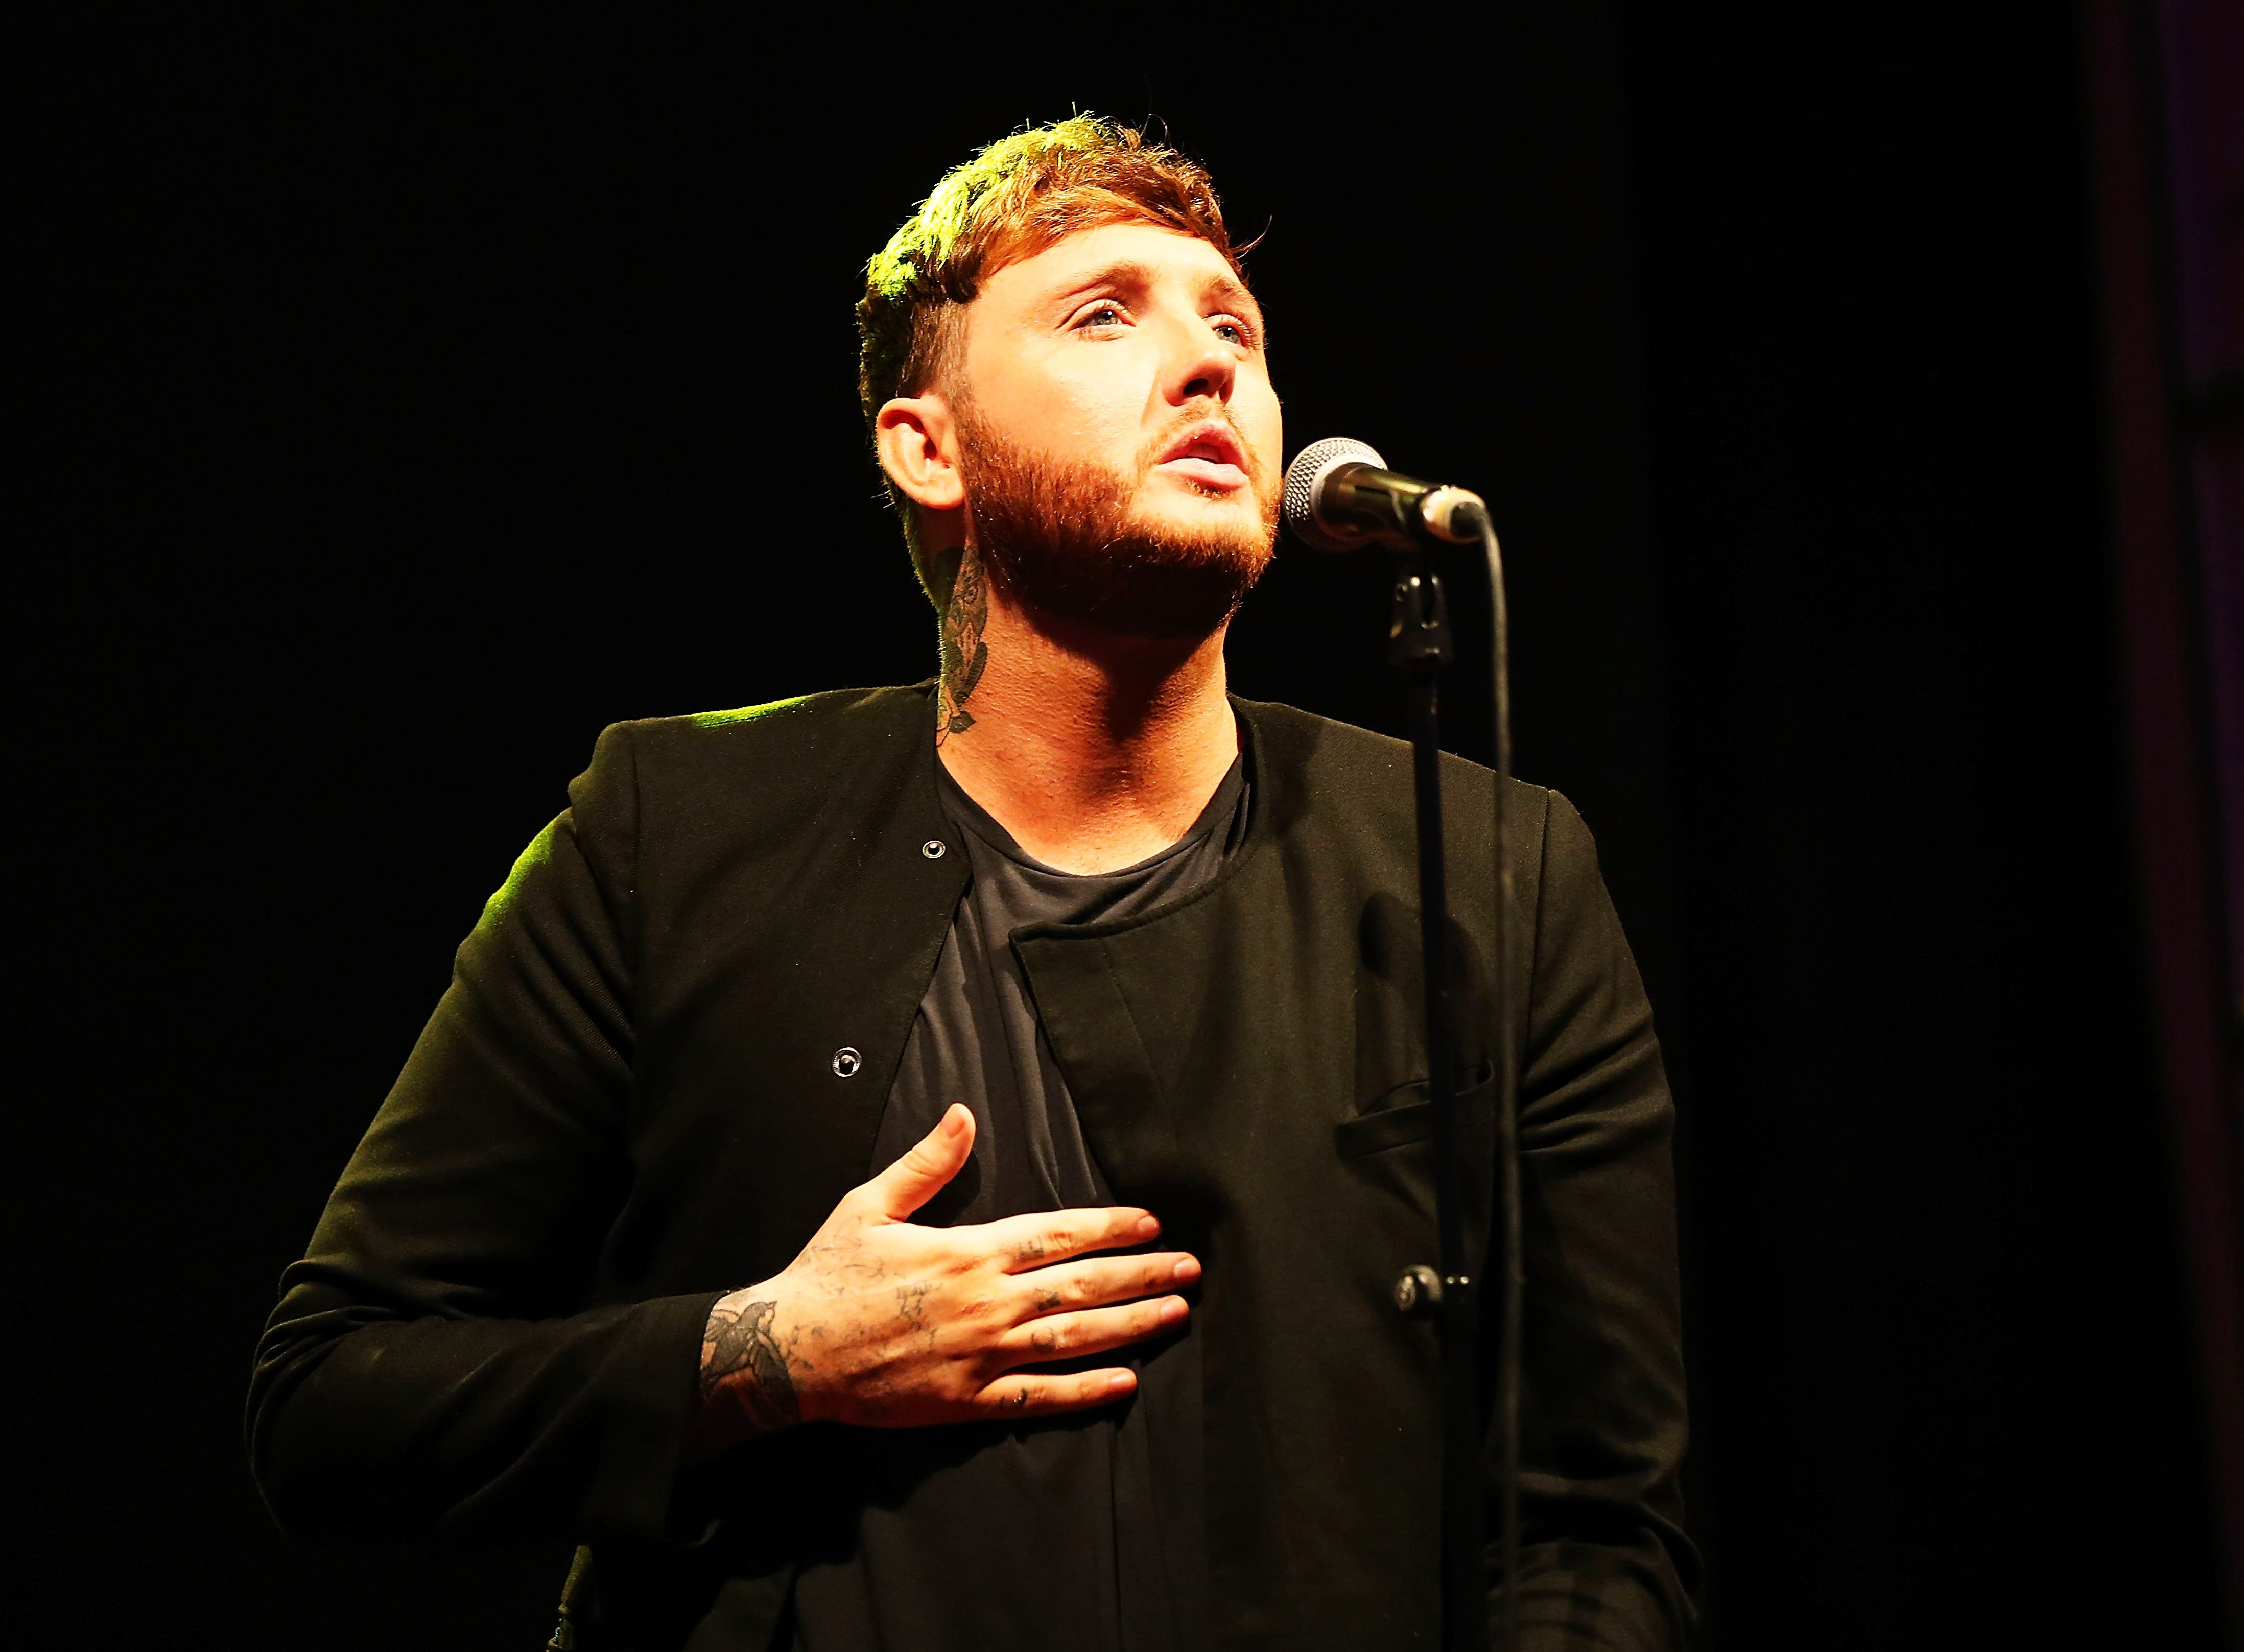 James Arthur Turned Down A *Heoowge* Offer From 'Celebrity Big